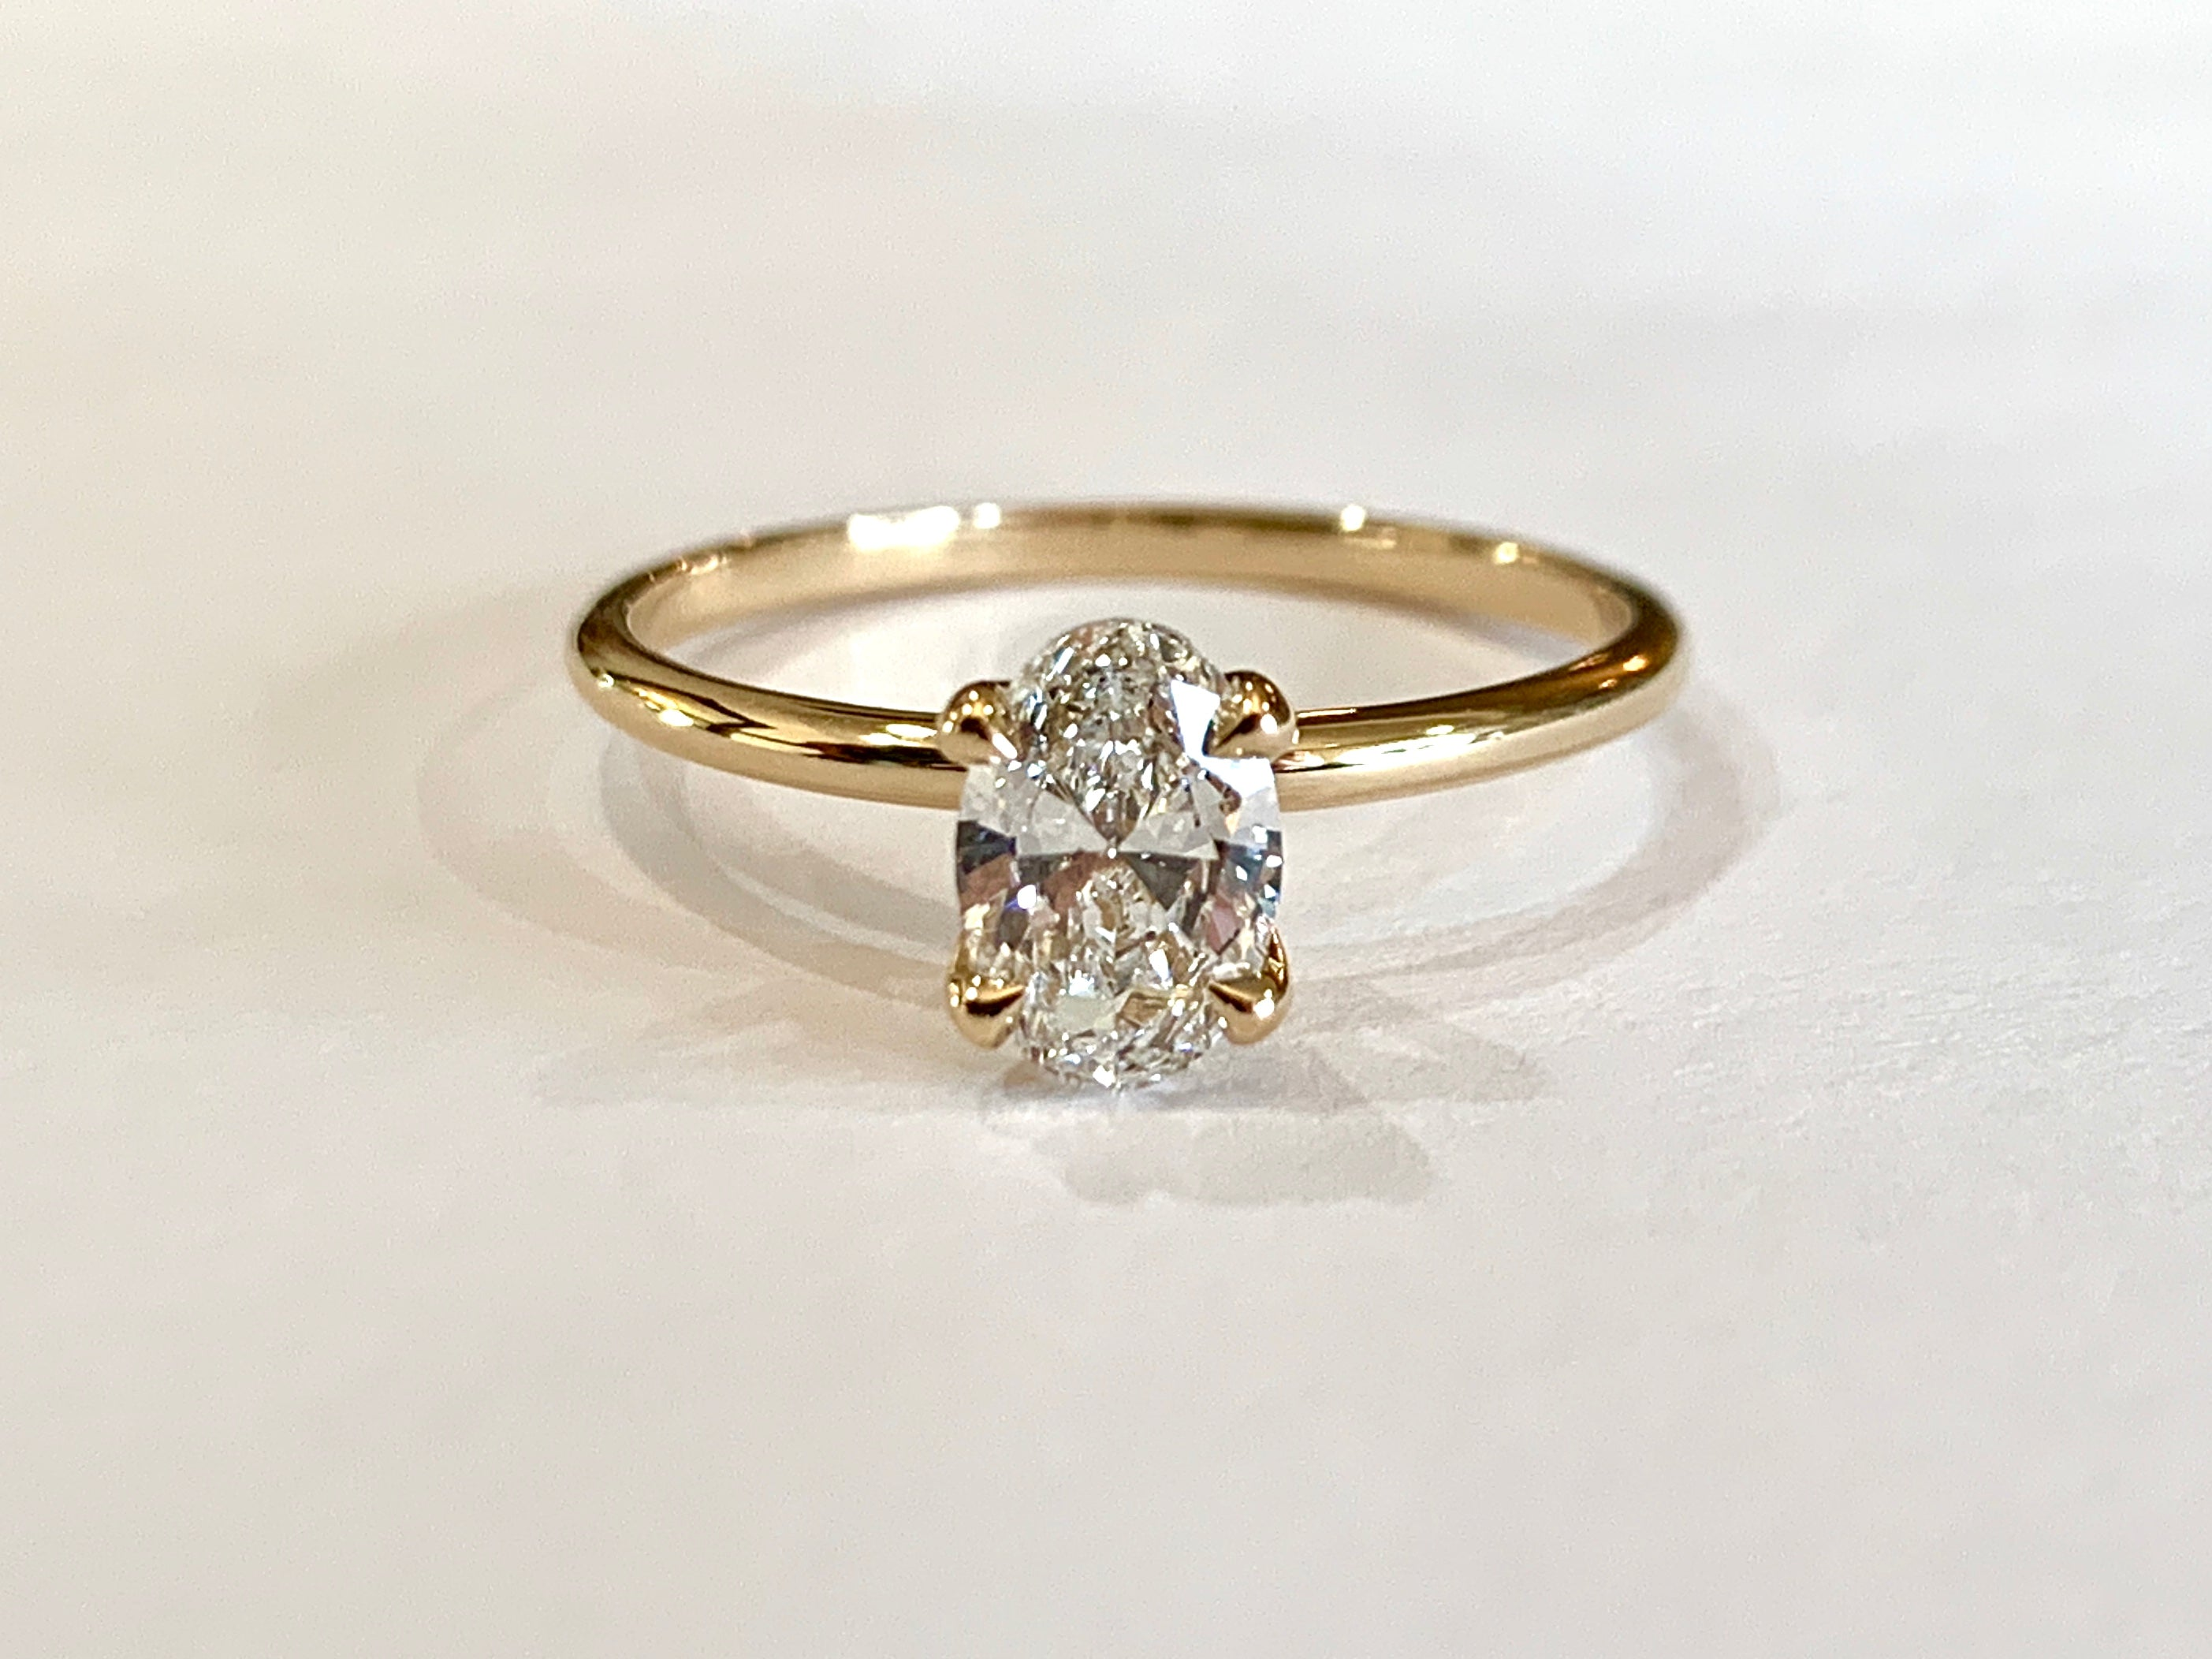 1 carat Oval engagement ring by dana walden jewelry